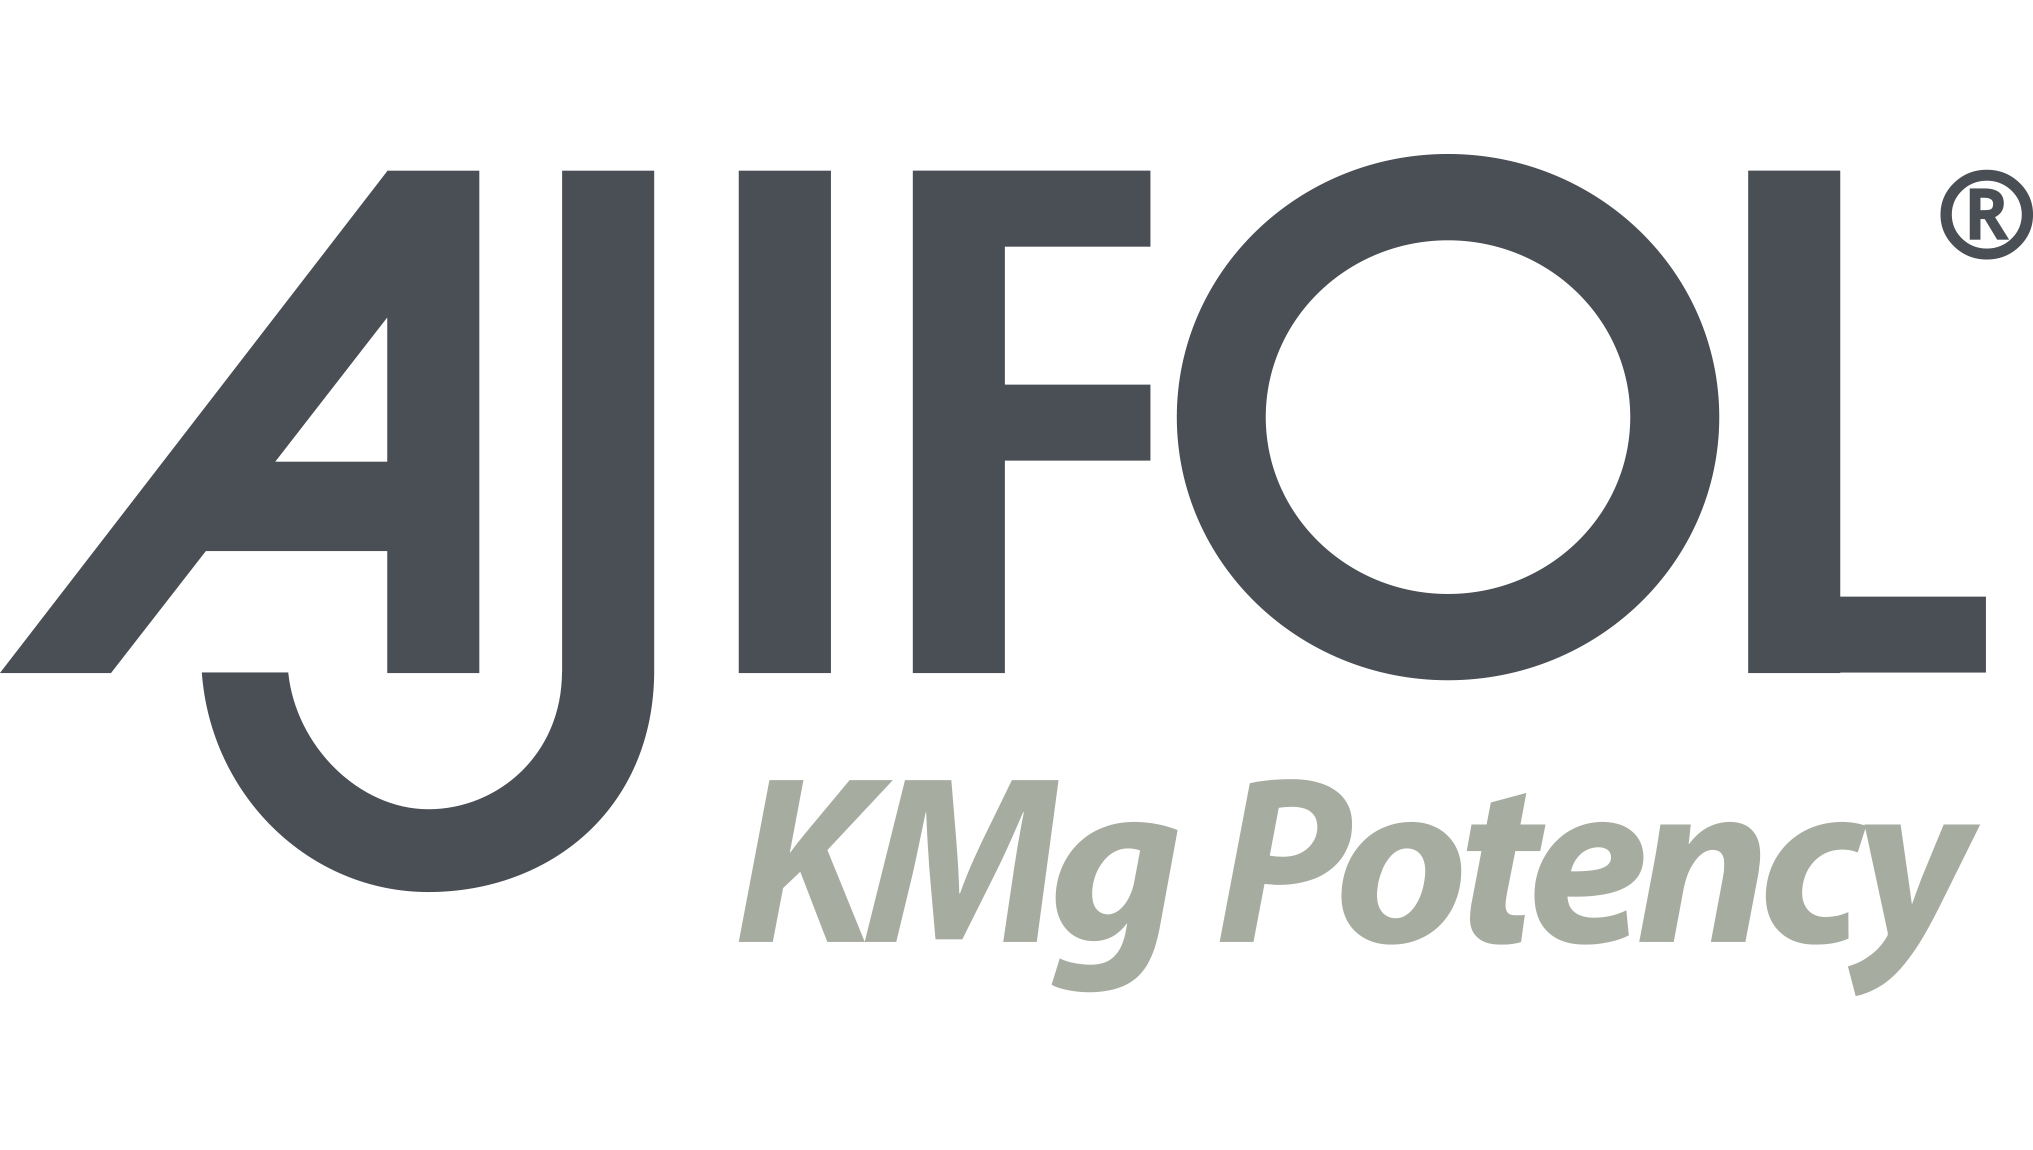 Fertilizante Ajifol KMg Potency